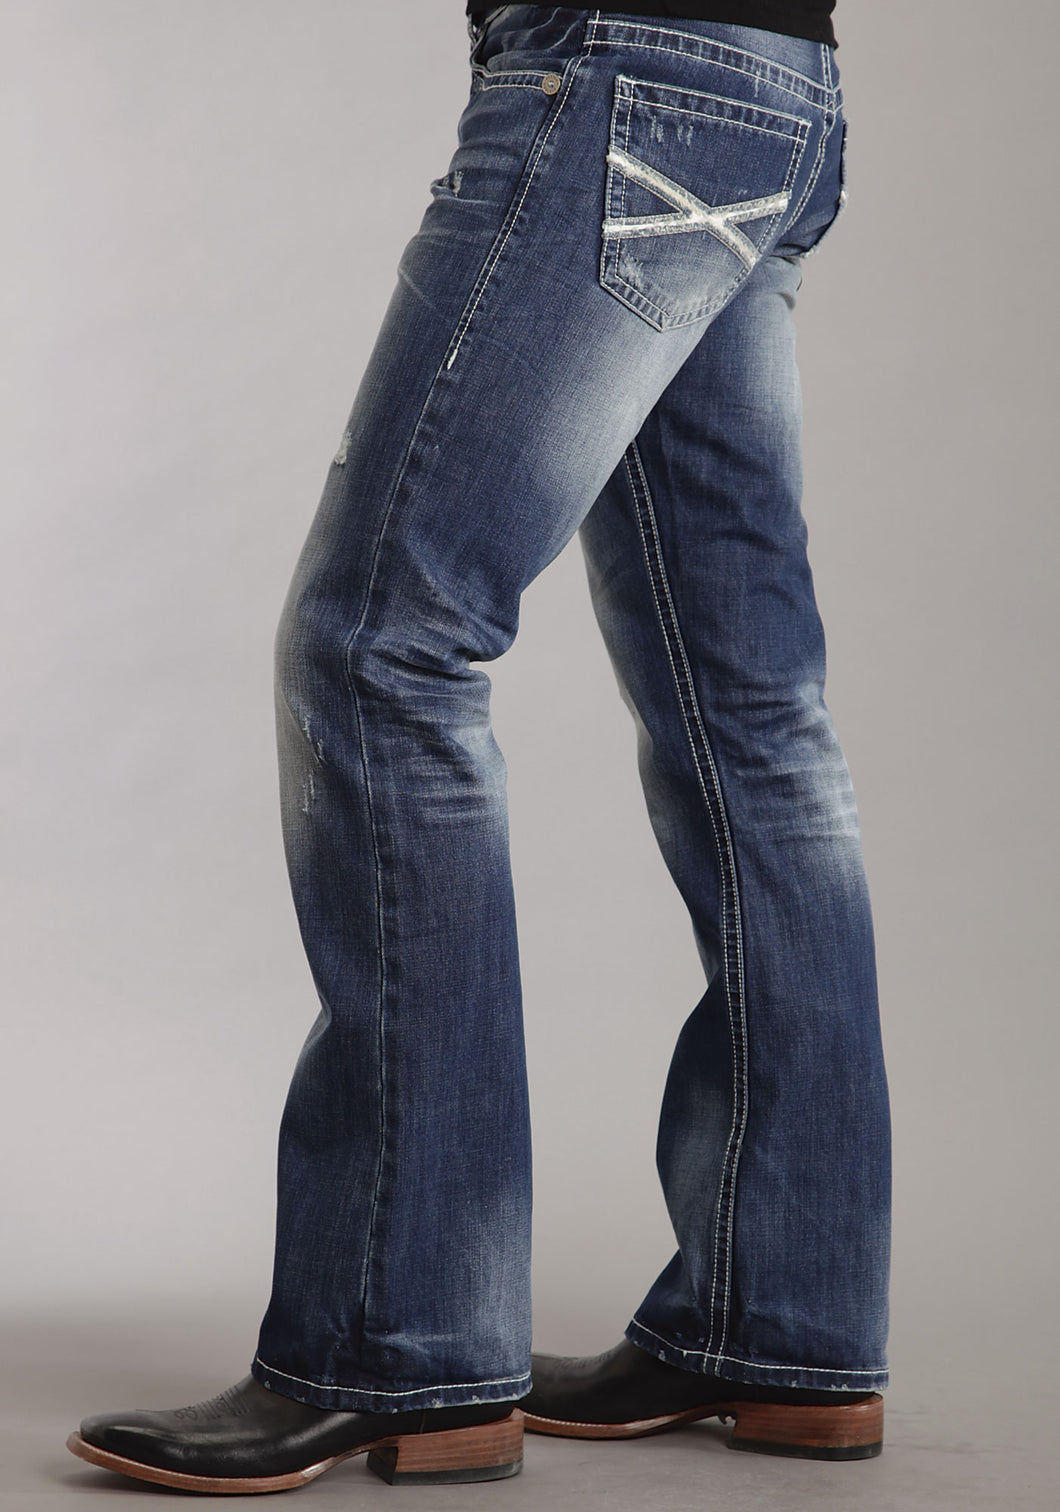 Stetson Men's Collection-instock Stetson Mens Jeans Med Wash Wwhite